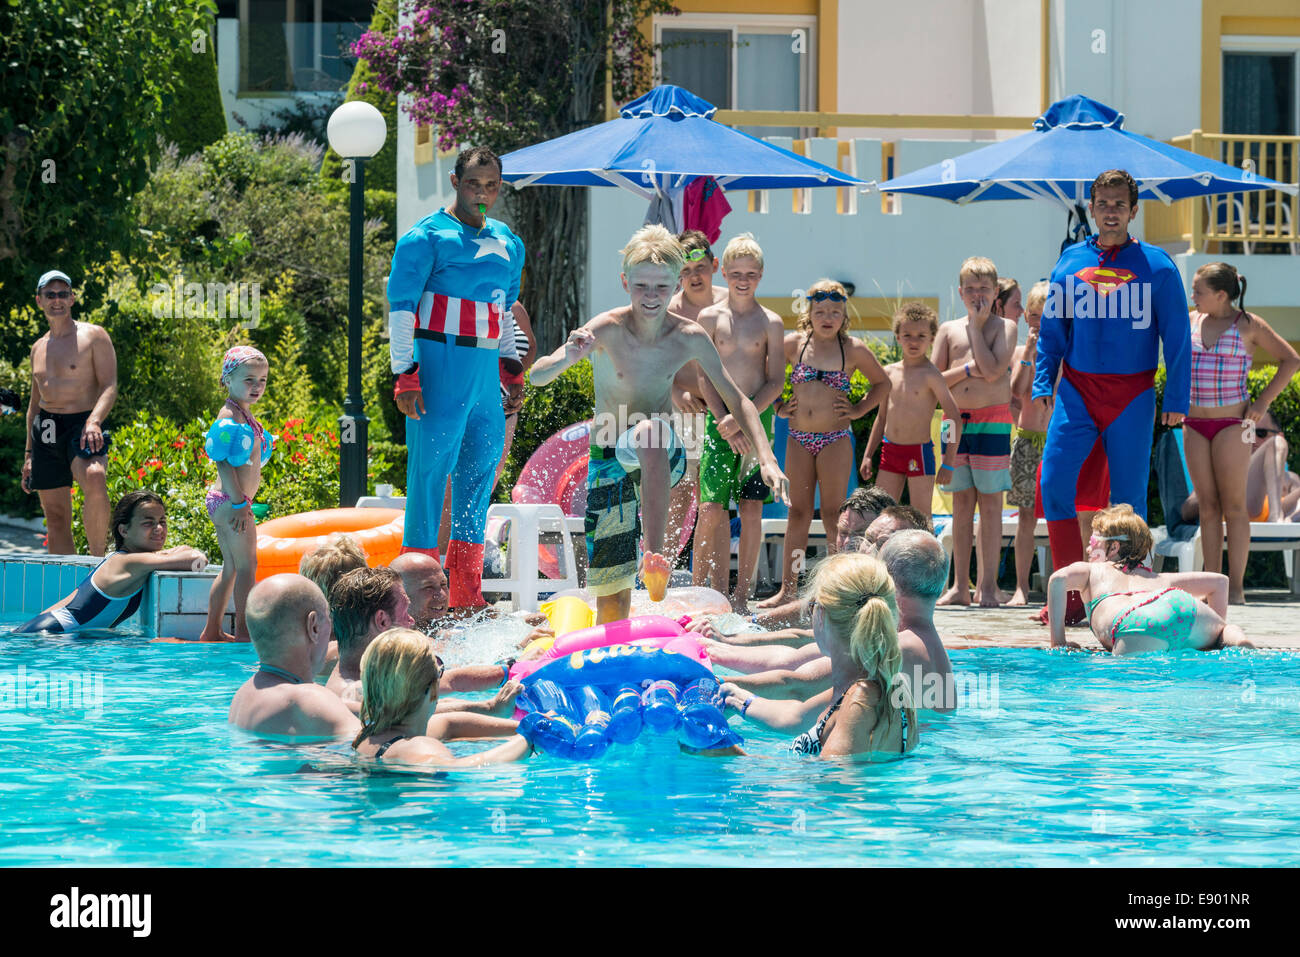 Holiday Entertainers And Kids Playing A Game In A Swimming Pool Stock Photo Royalty Free Image